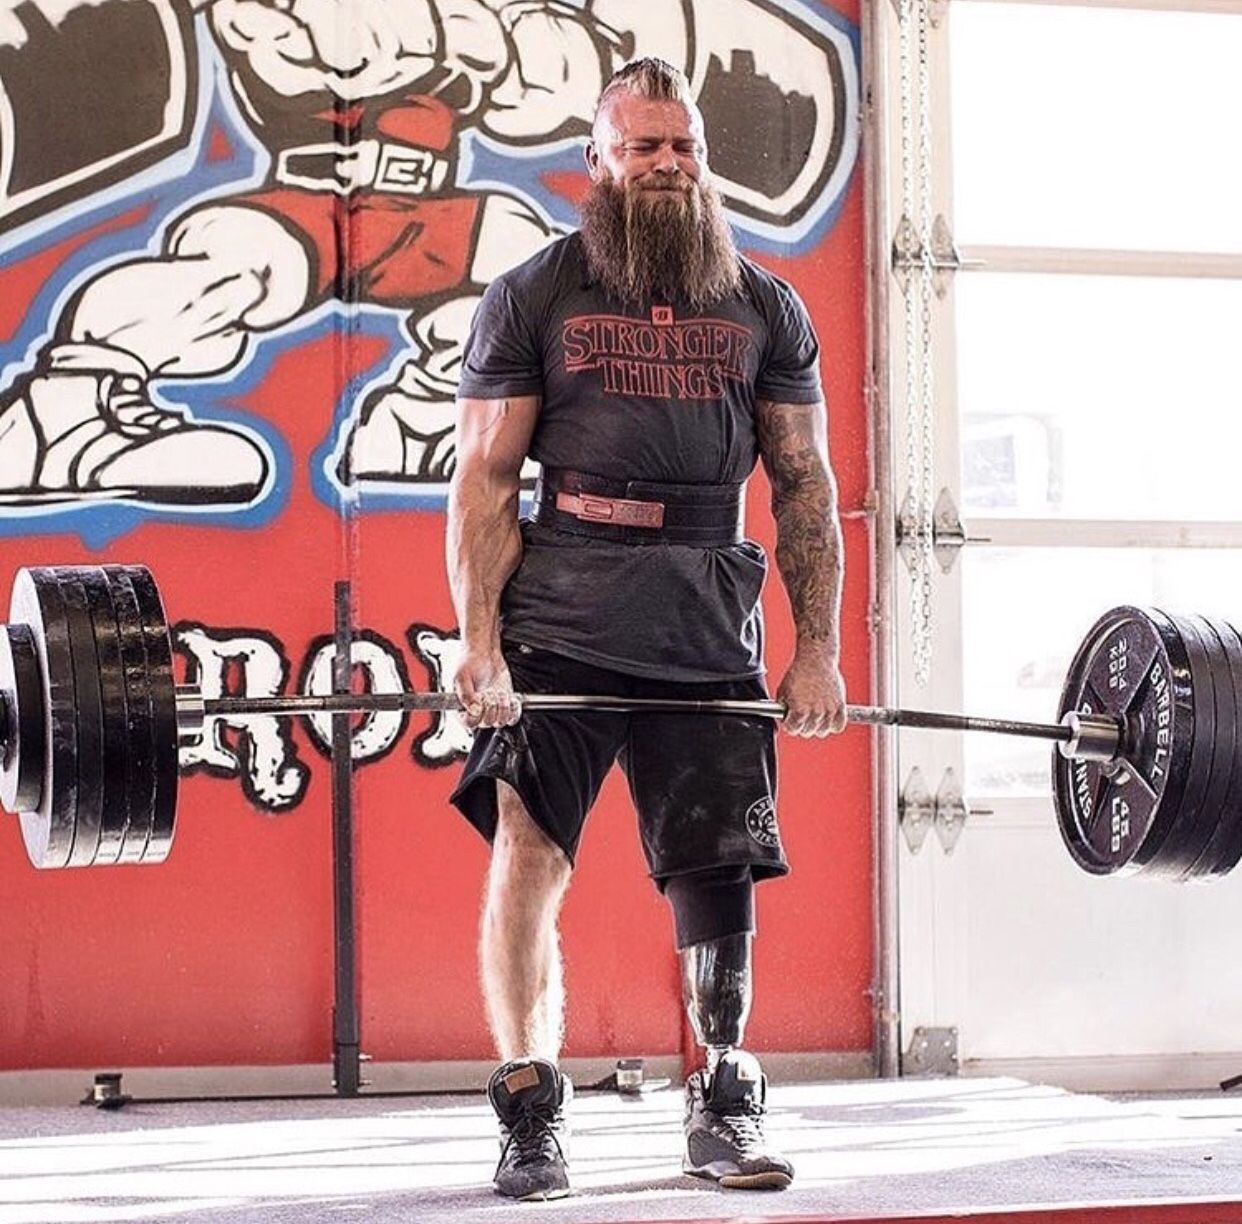 Pin By Barbend On Powerlifting Powerlifting Sports